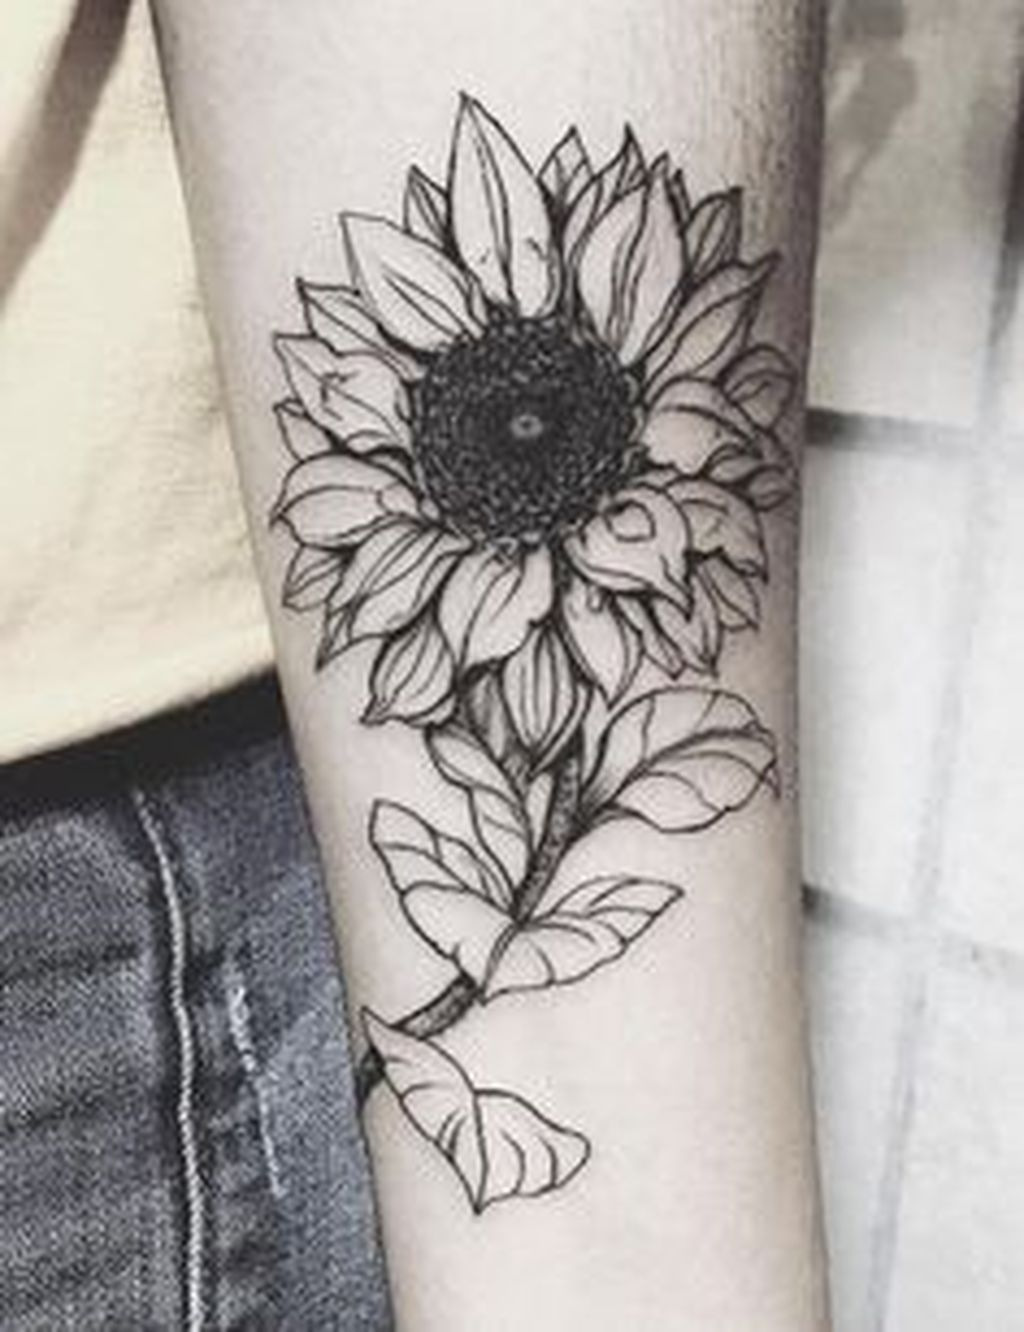 awesome 59 cool black and white sunflower tattoo ideas you with to rh pinterest co uk realistic sunflower tattoo black and white black and white sunflower tattoo small